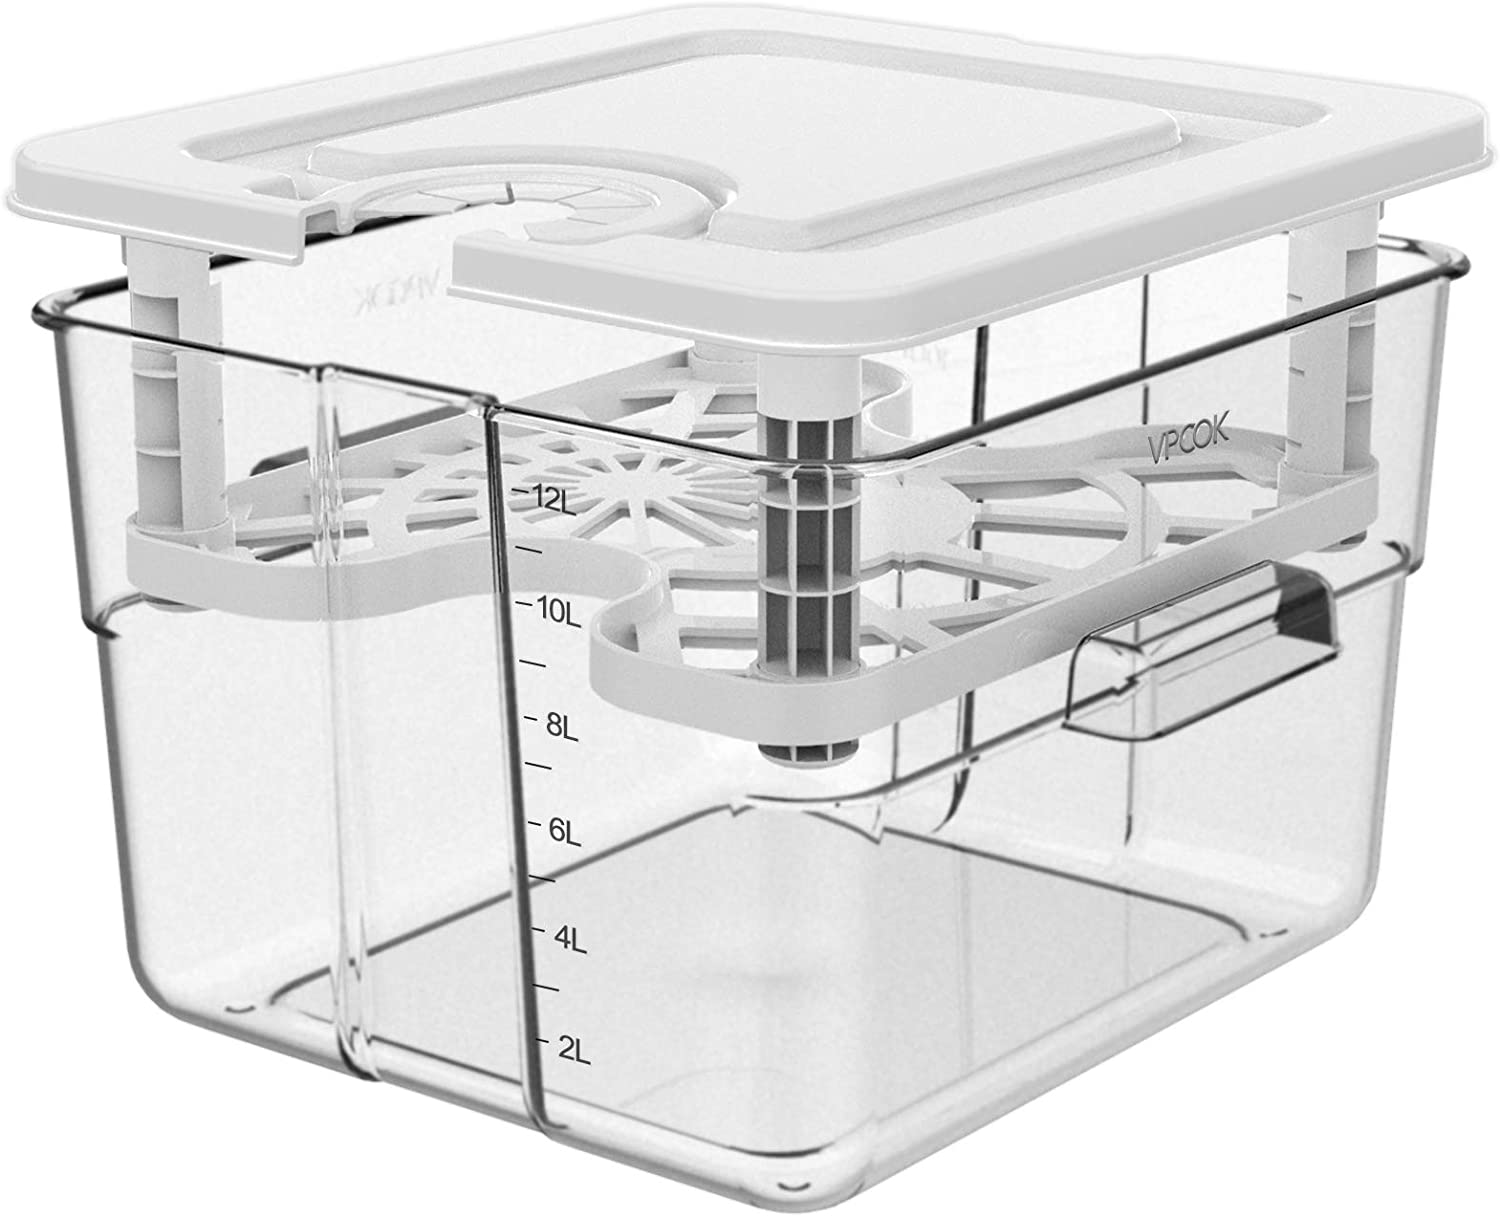 Sous Vide Container for Anova Culinary Anova Nano Joule Instant Pot, 12.6 Qt Sous Vide Containers with Lid and Rack Sous Vide Pot Large Kitchen Food Storage Container